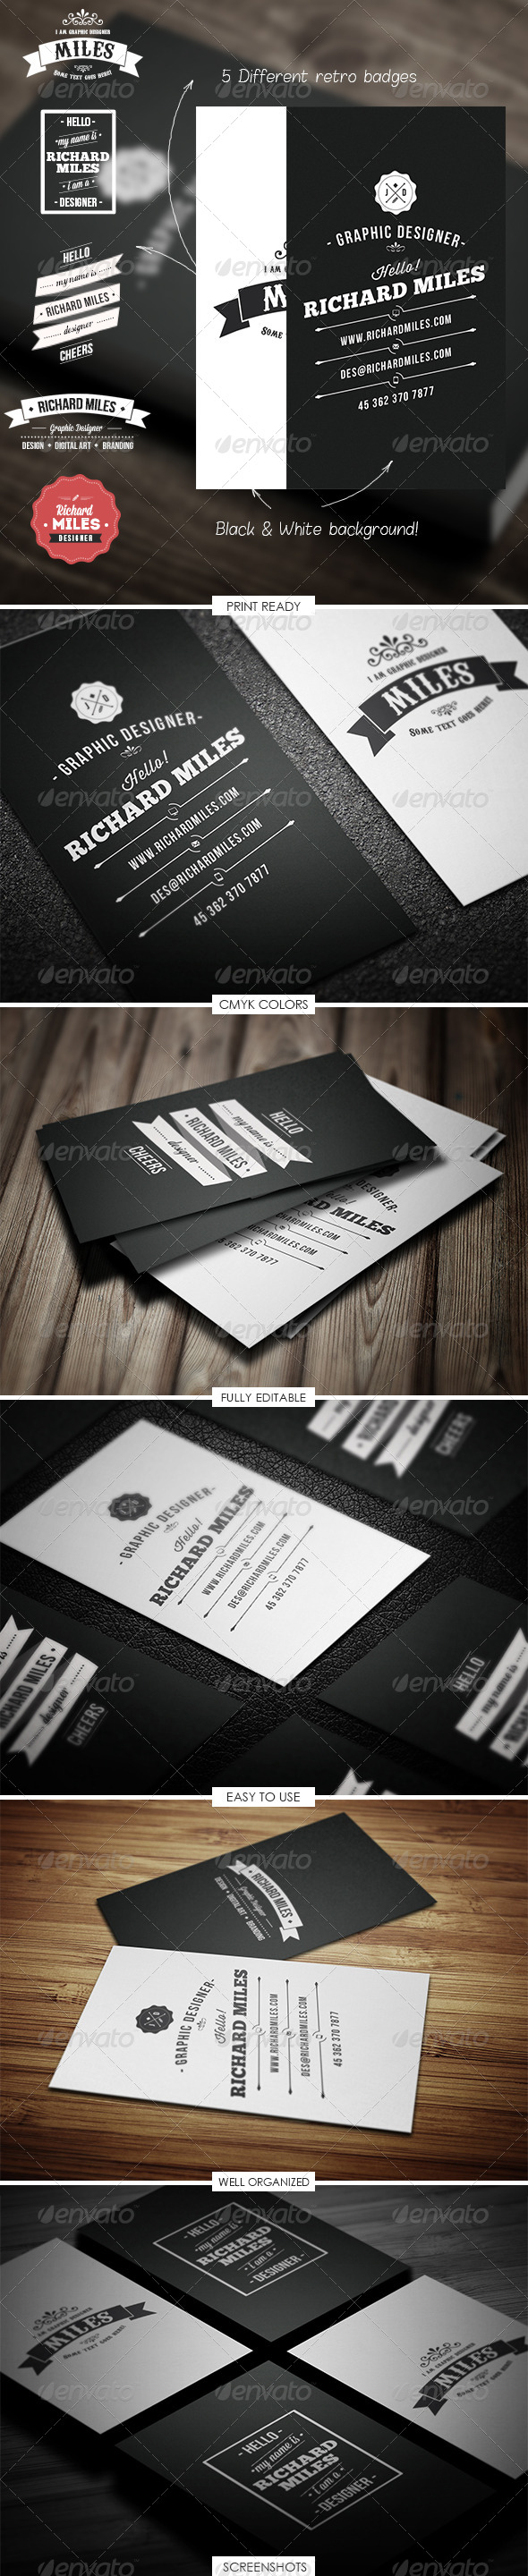 GraphicRiver Retro Business Card 5018222